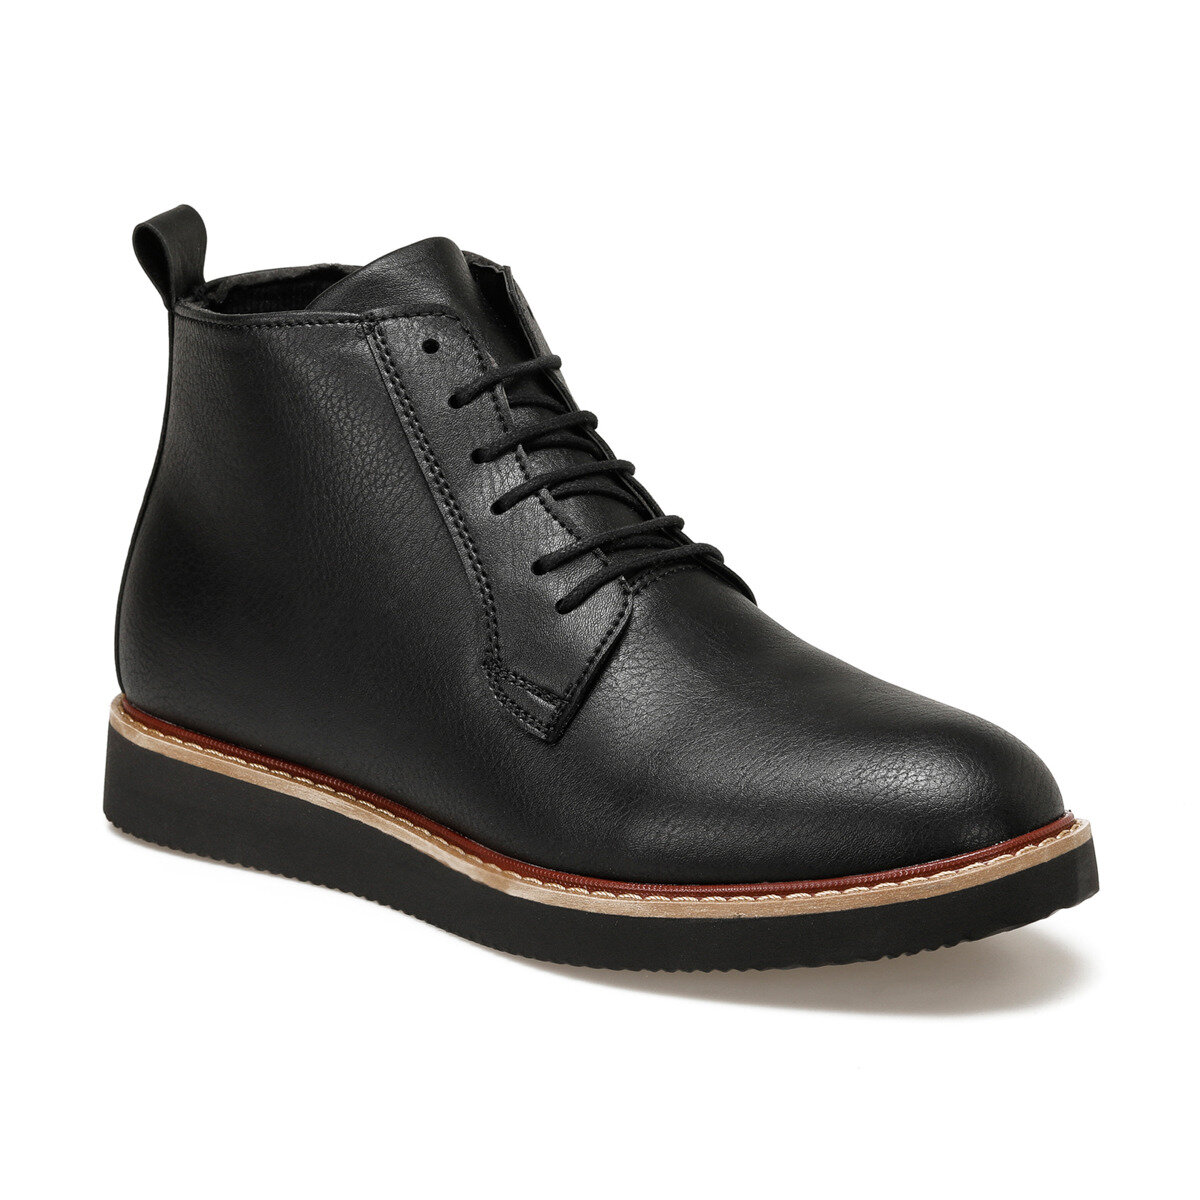 FLO 3321-2 Black Men Boots JJ-Stiller